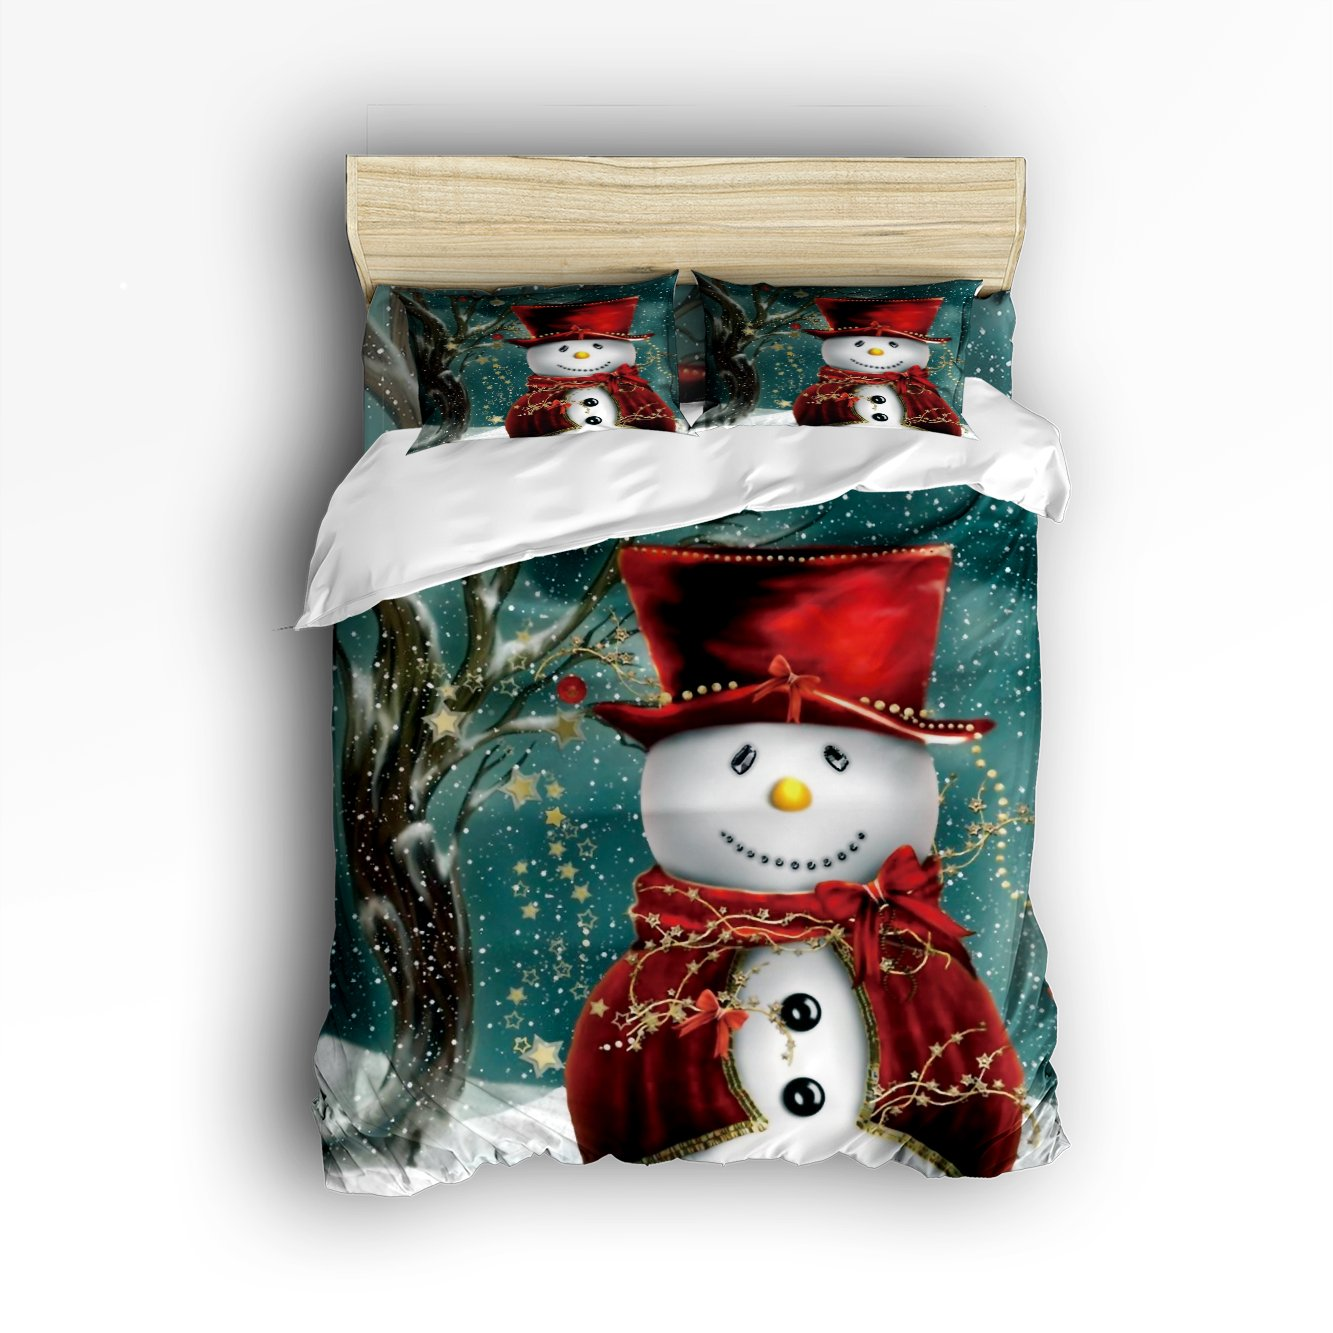 Family Decor Snowman Winter Christmas Digital Print Home Comforter Cover Bedding Sets Duvet Cover Sets Bedspread for Adult Kids,Flat Sheet, Shams Set 4Pieces,4 Pcs Queen Size for Kids Teenage Teens